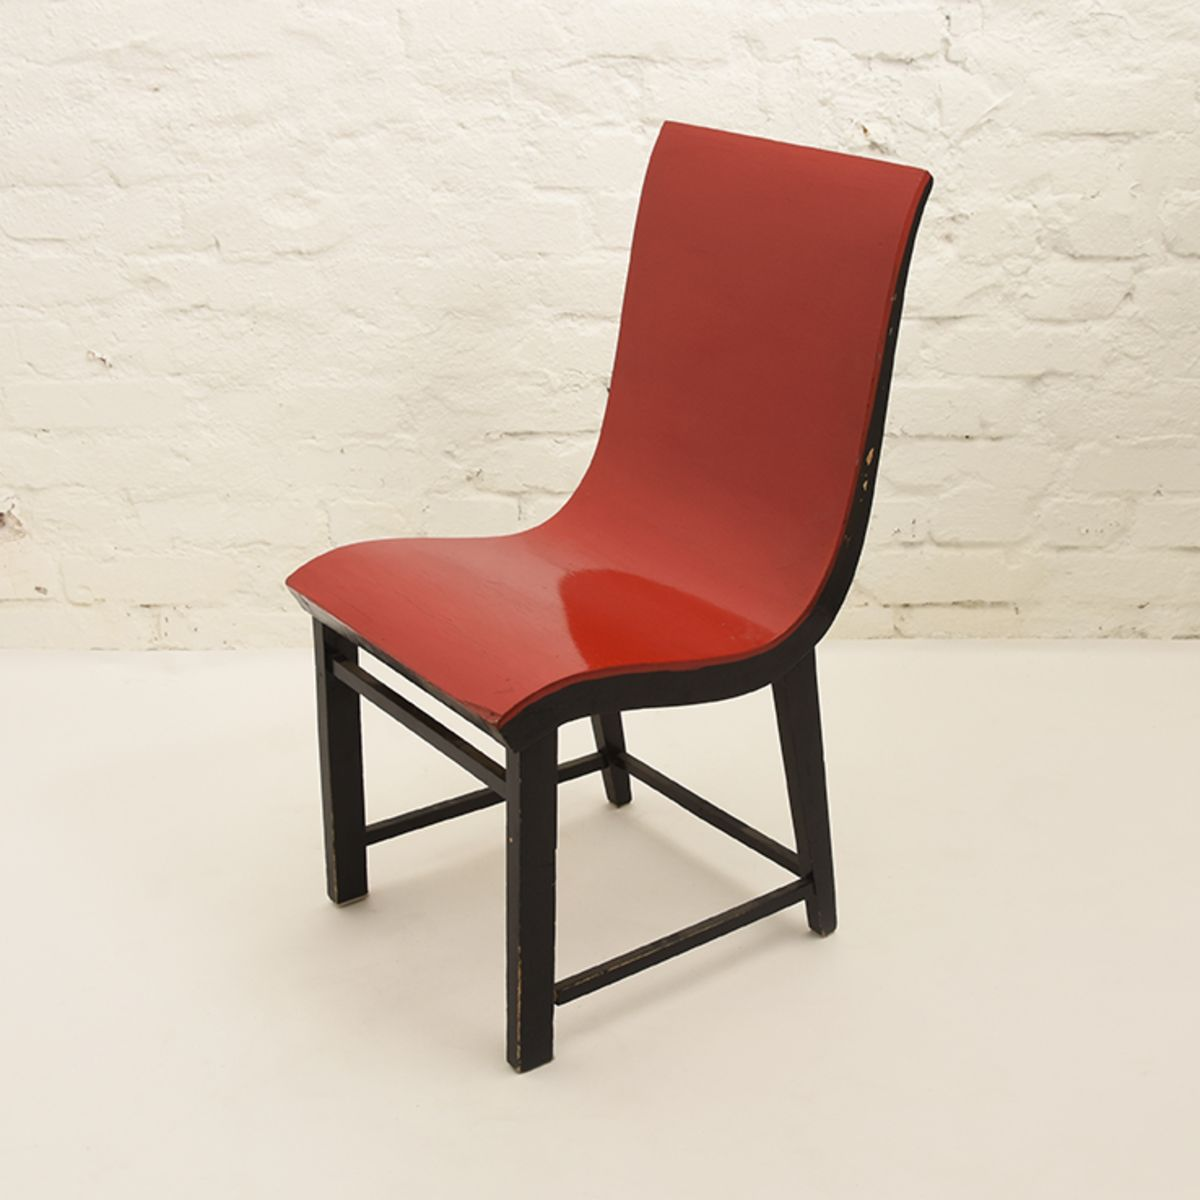 Toivonen-Eevert-Red-Chair